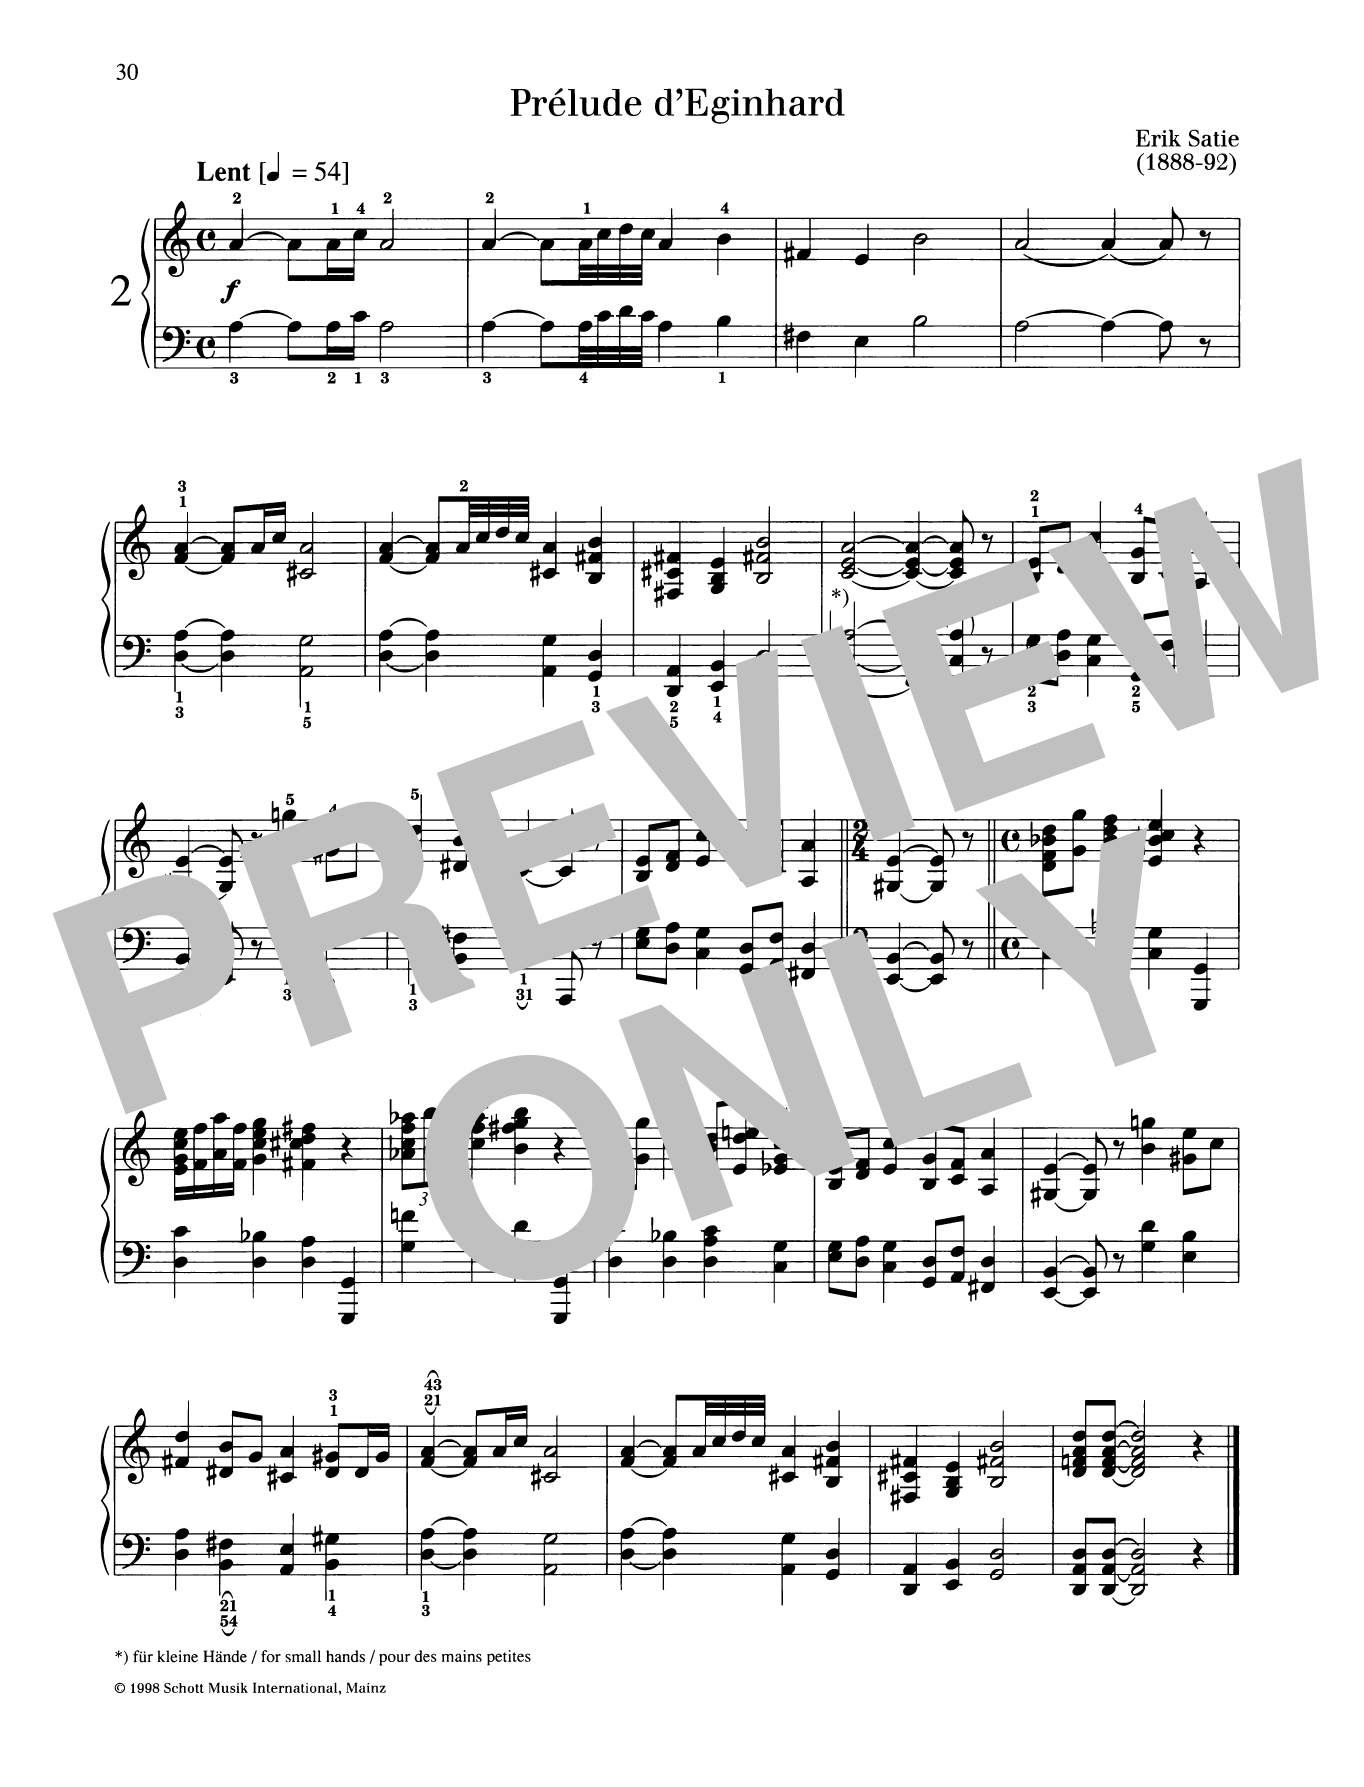 Prelude d'Eginhard Sheet Music